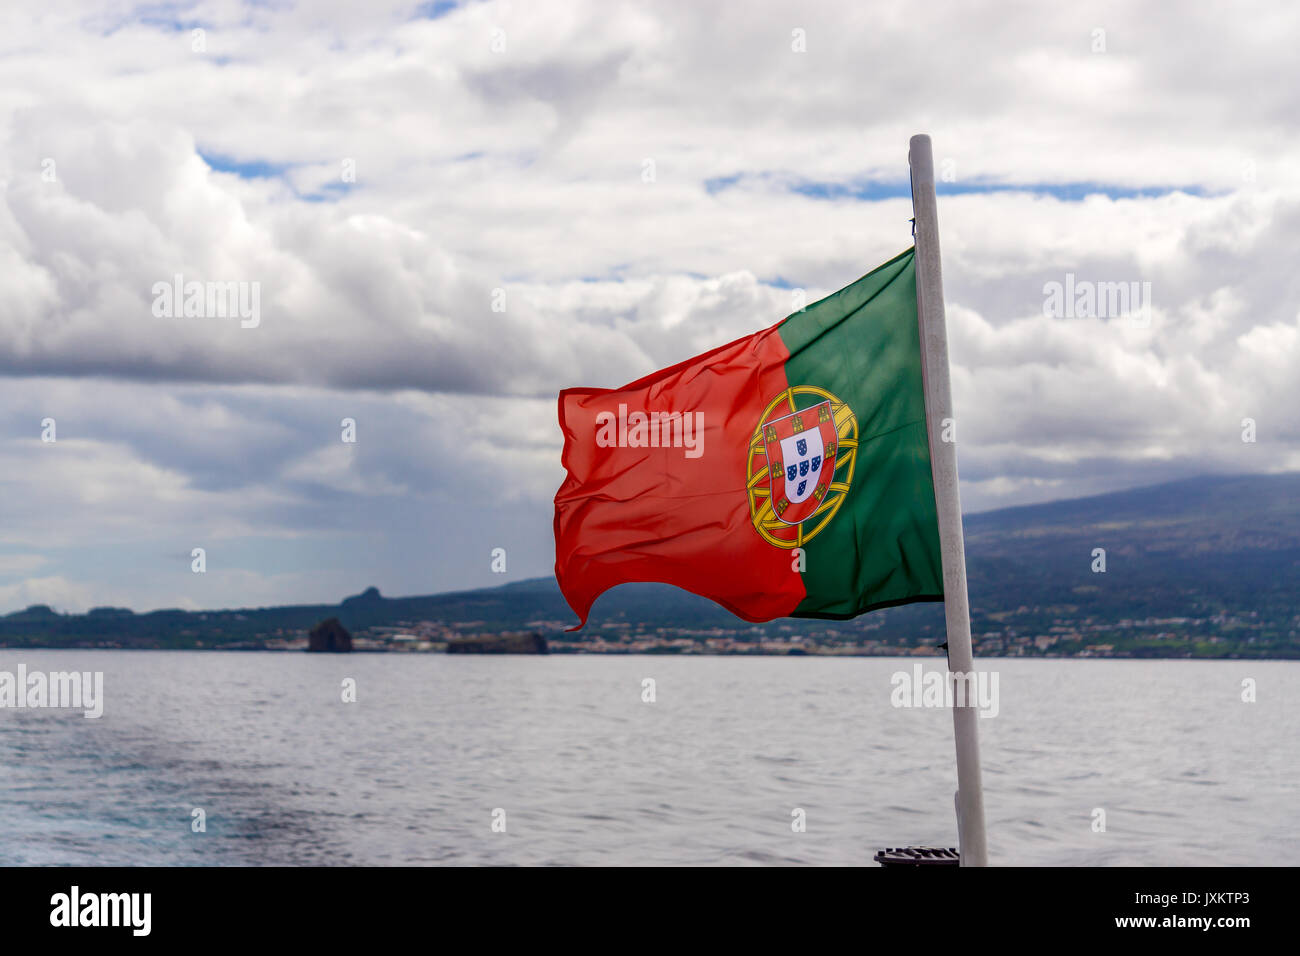 Portuguese flag fluttering in the wind, with the island of Pico in the background - Stock Image